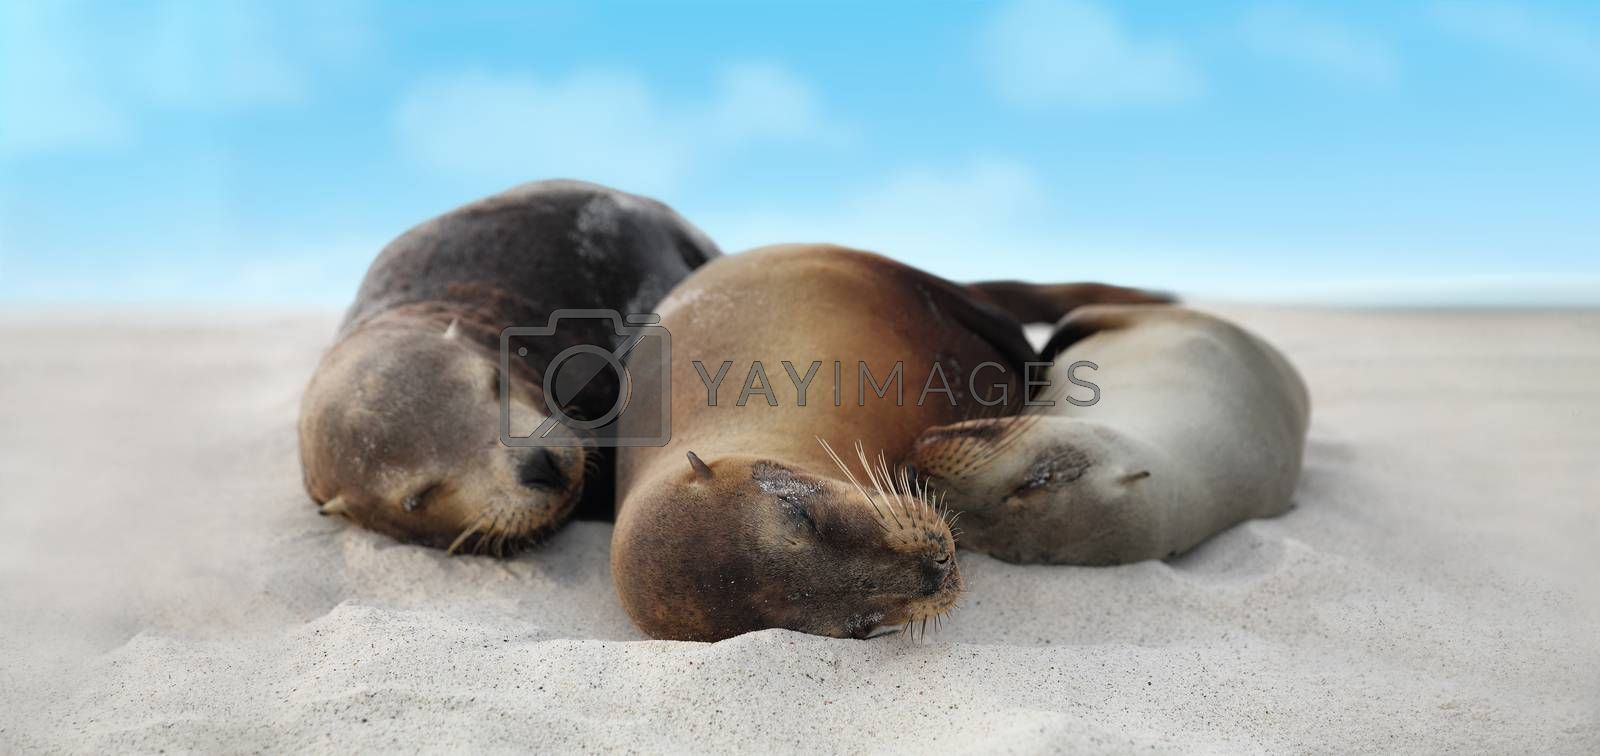 Sea Lion Family in sand lying on beach on Galapagos Islands - Cute adorable Animals. Animal and wildlife nature on Galapagos, Ecuador, South America.